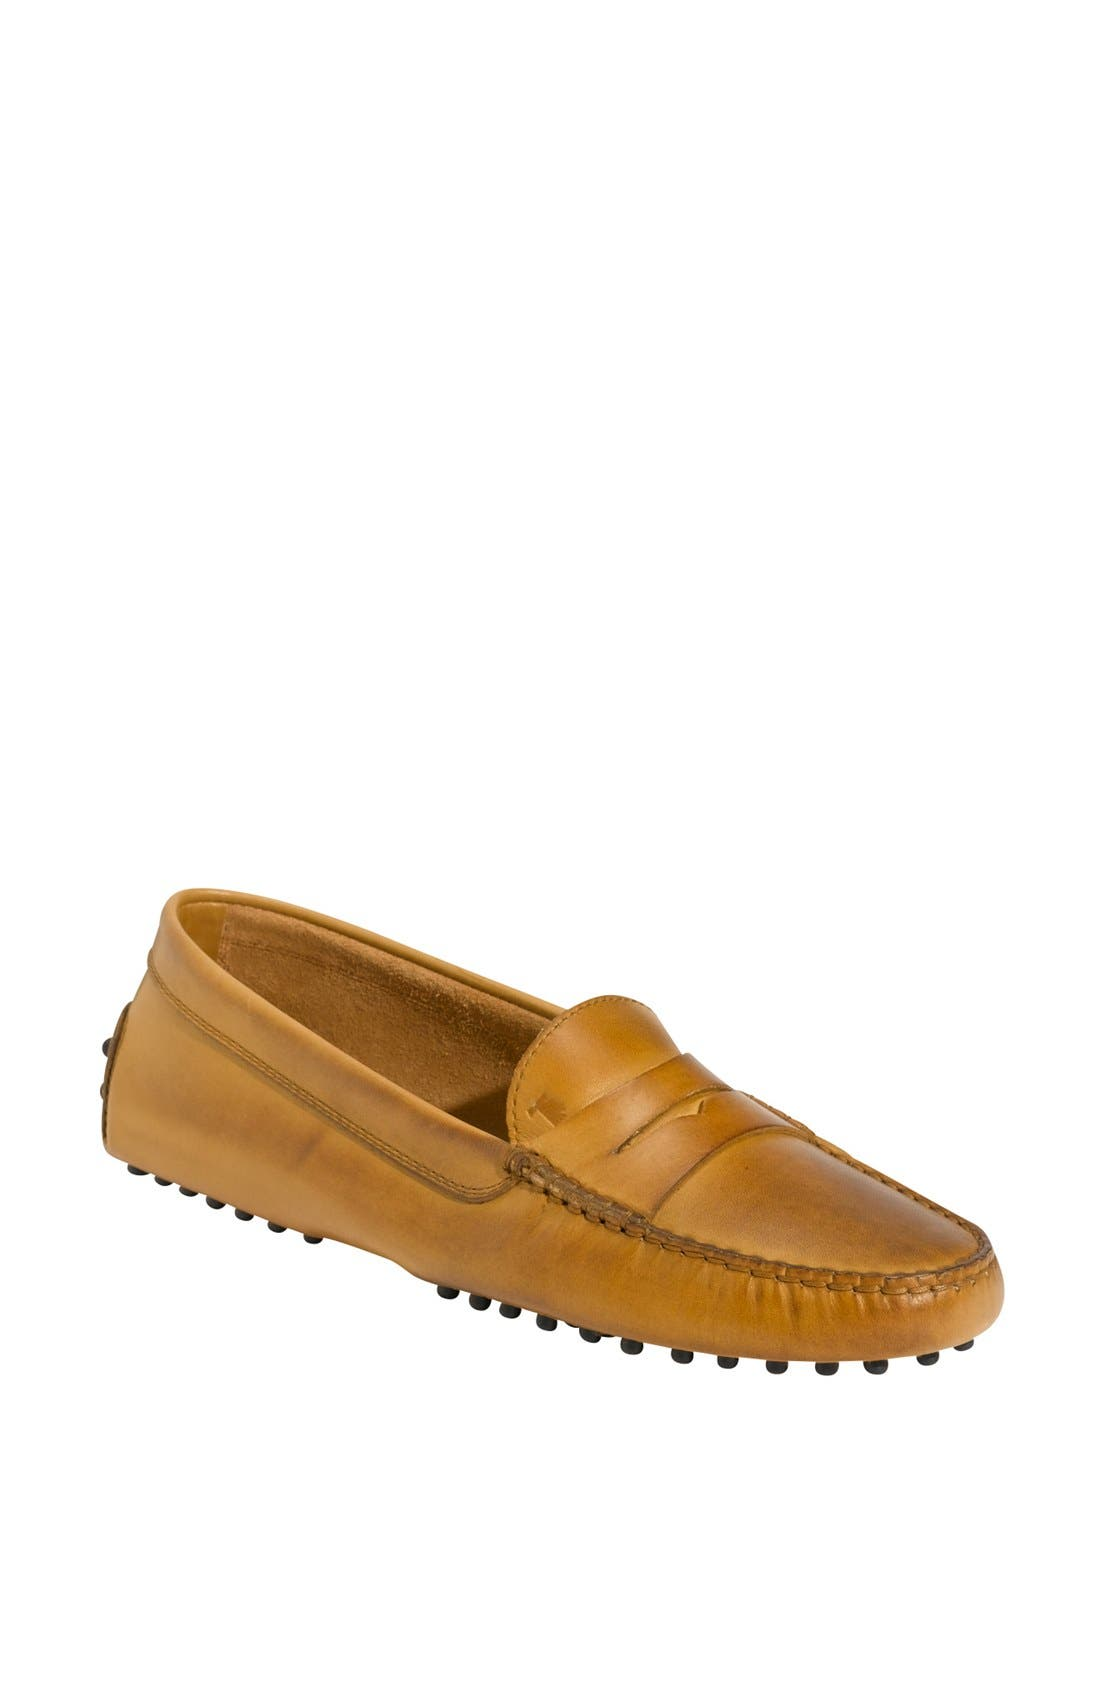 'Gommini' Driving Moccasin,                             Main thumbnail 1, color,                             Brown